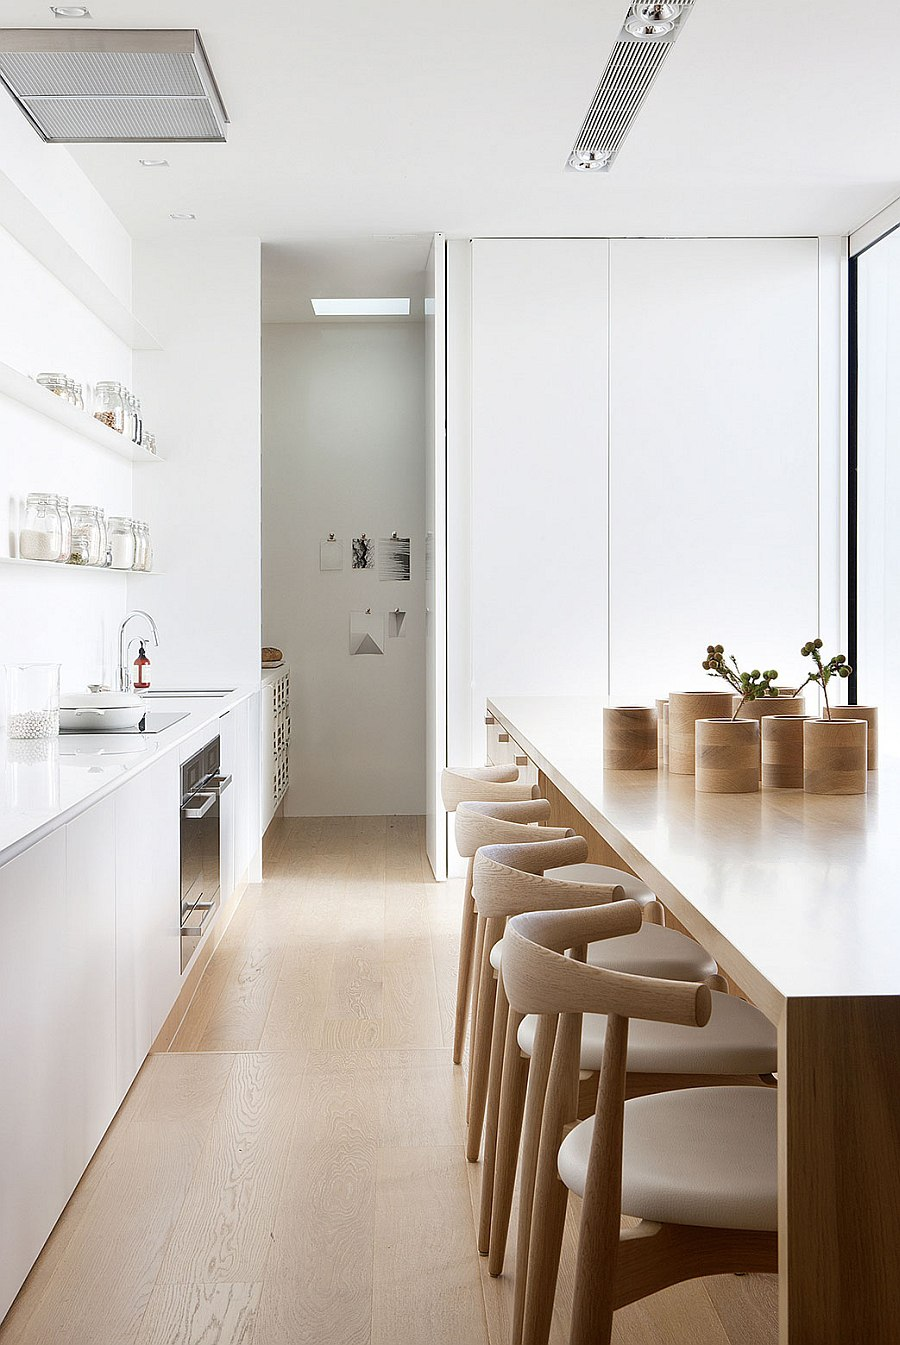 Contemporary kitchen with smart wooden kitchen island at its heart